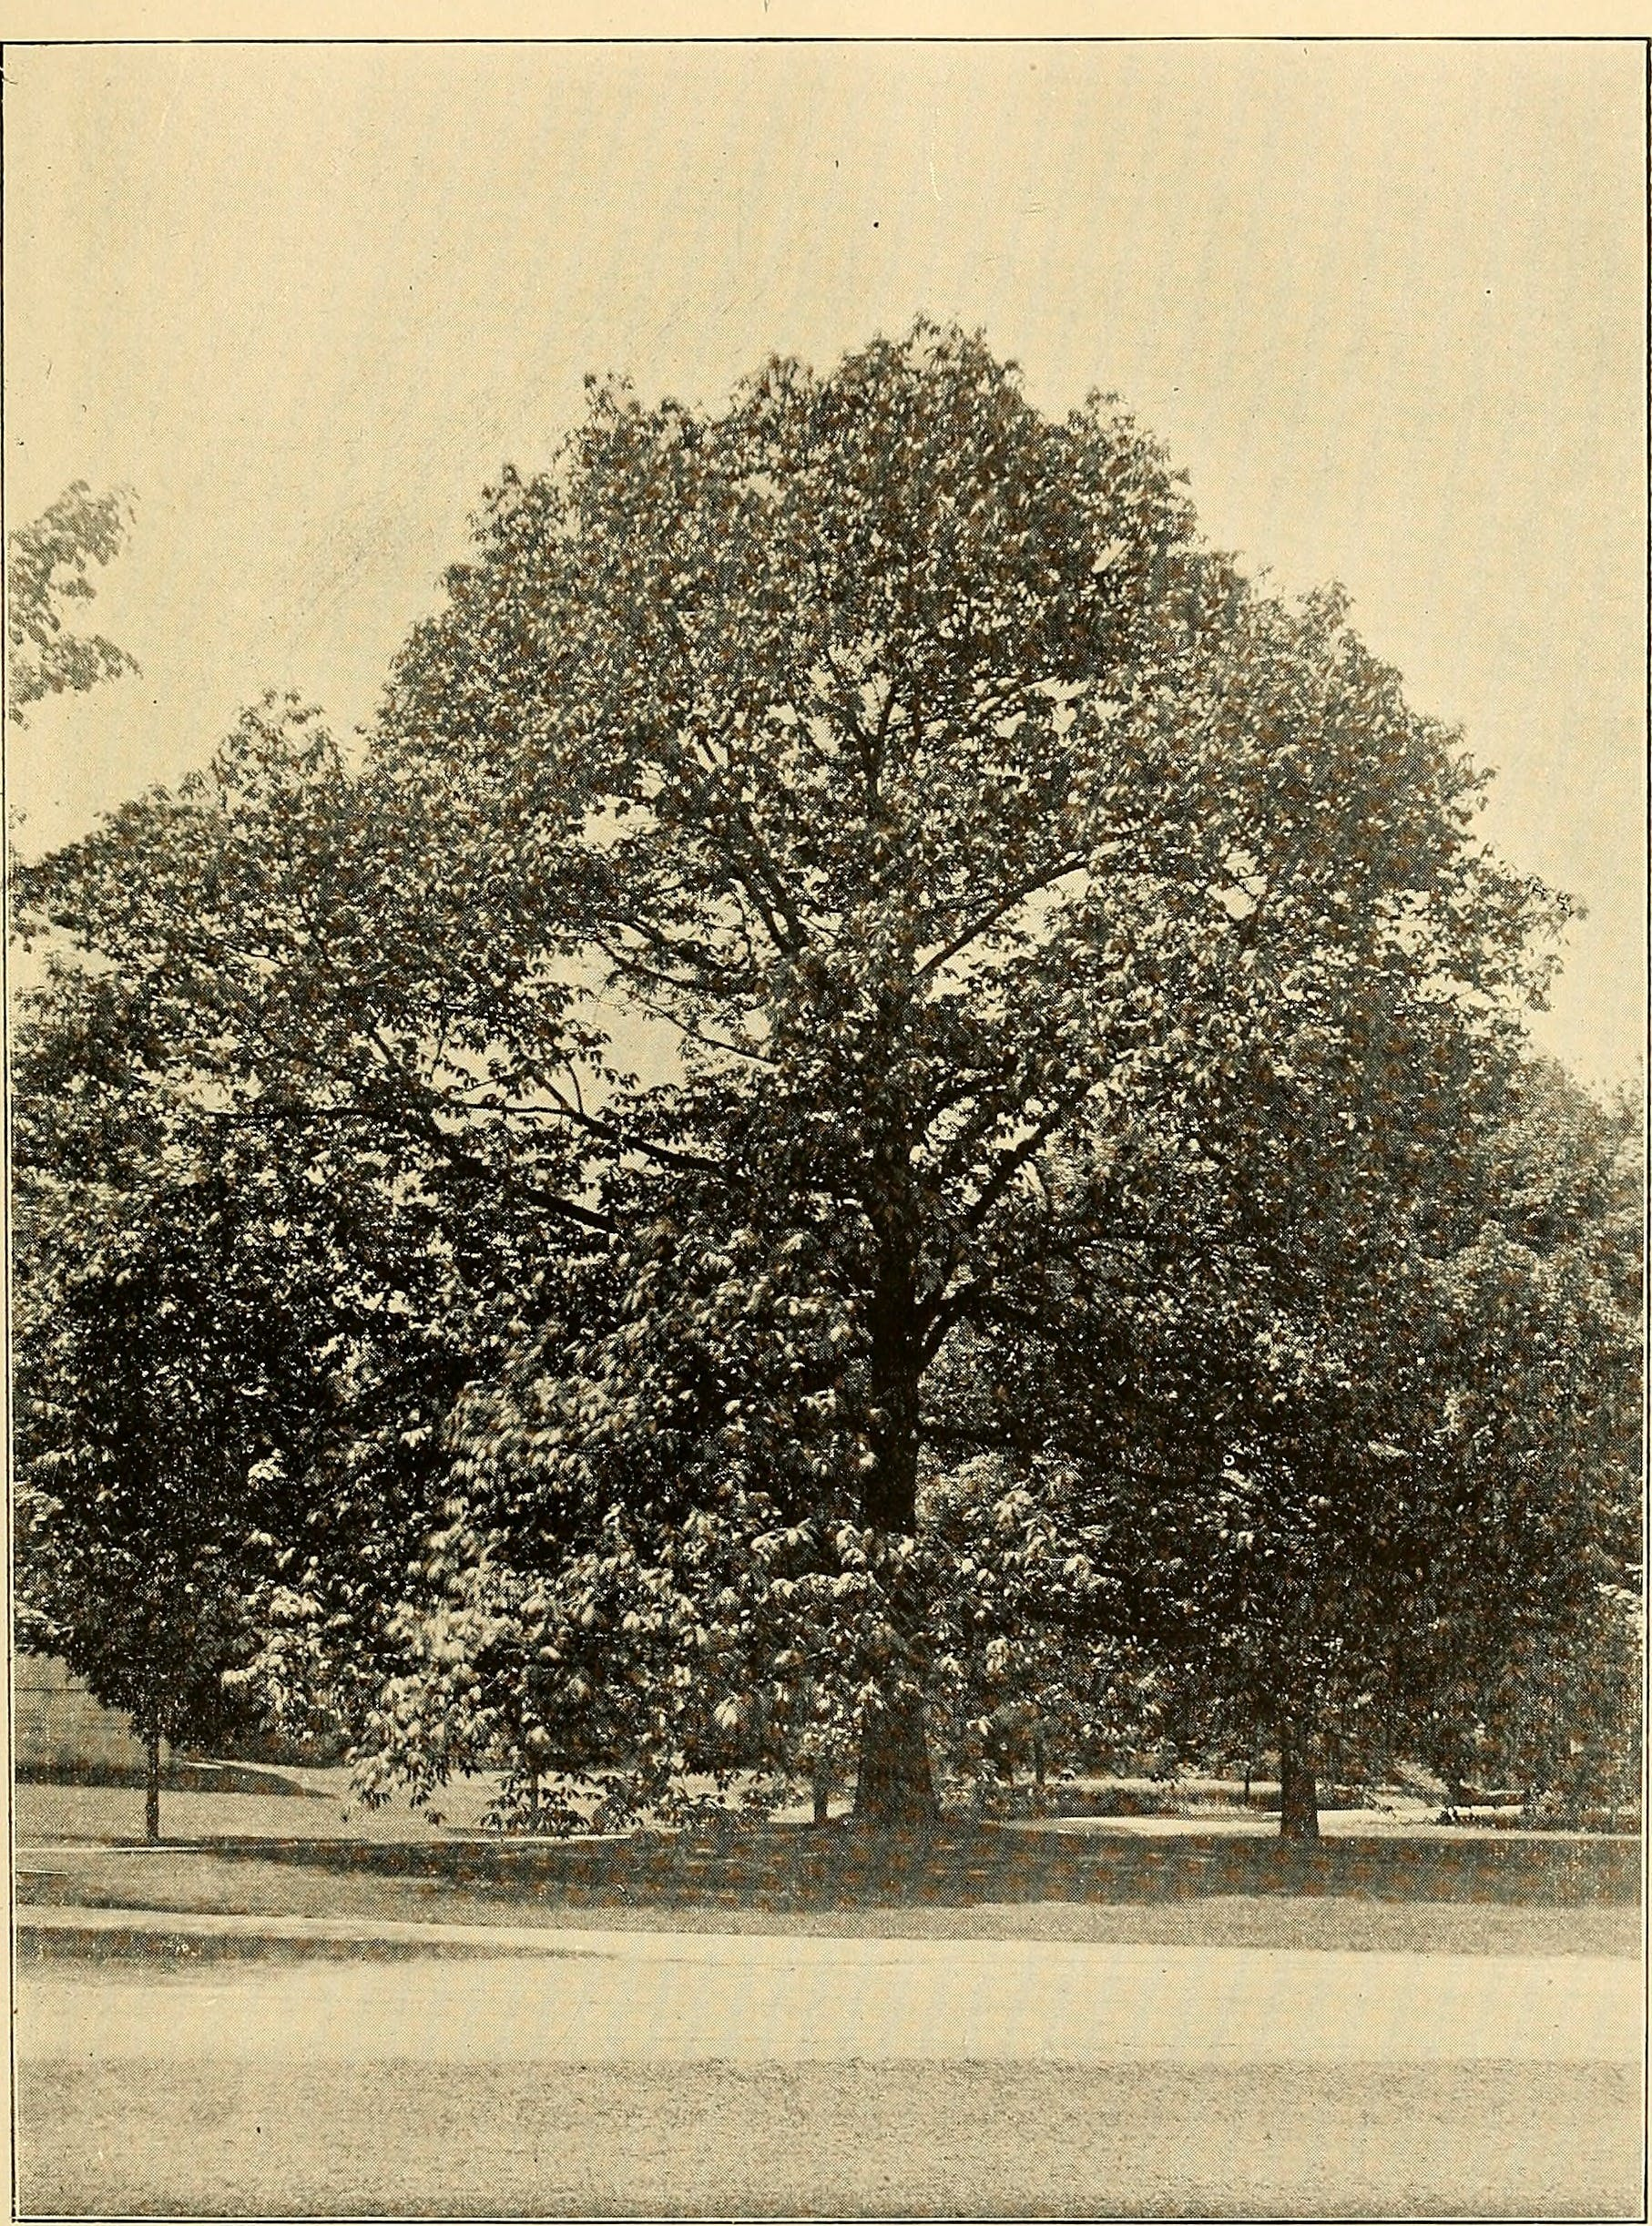 An American chestnut on the grounds of Vassar College, 1909